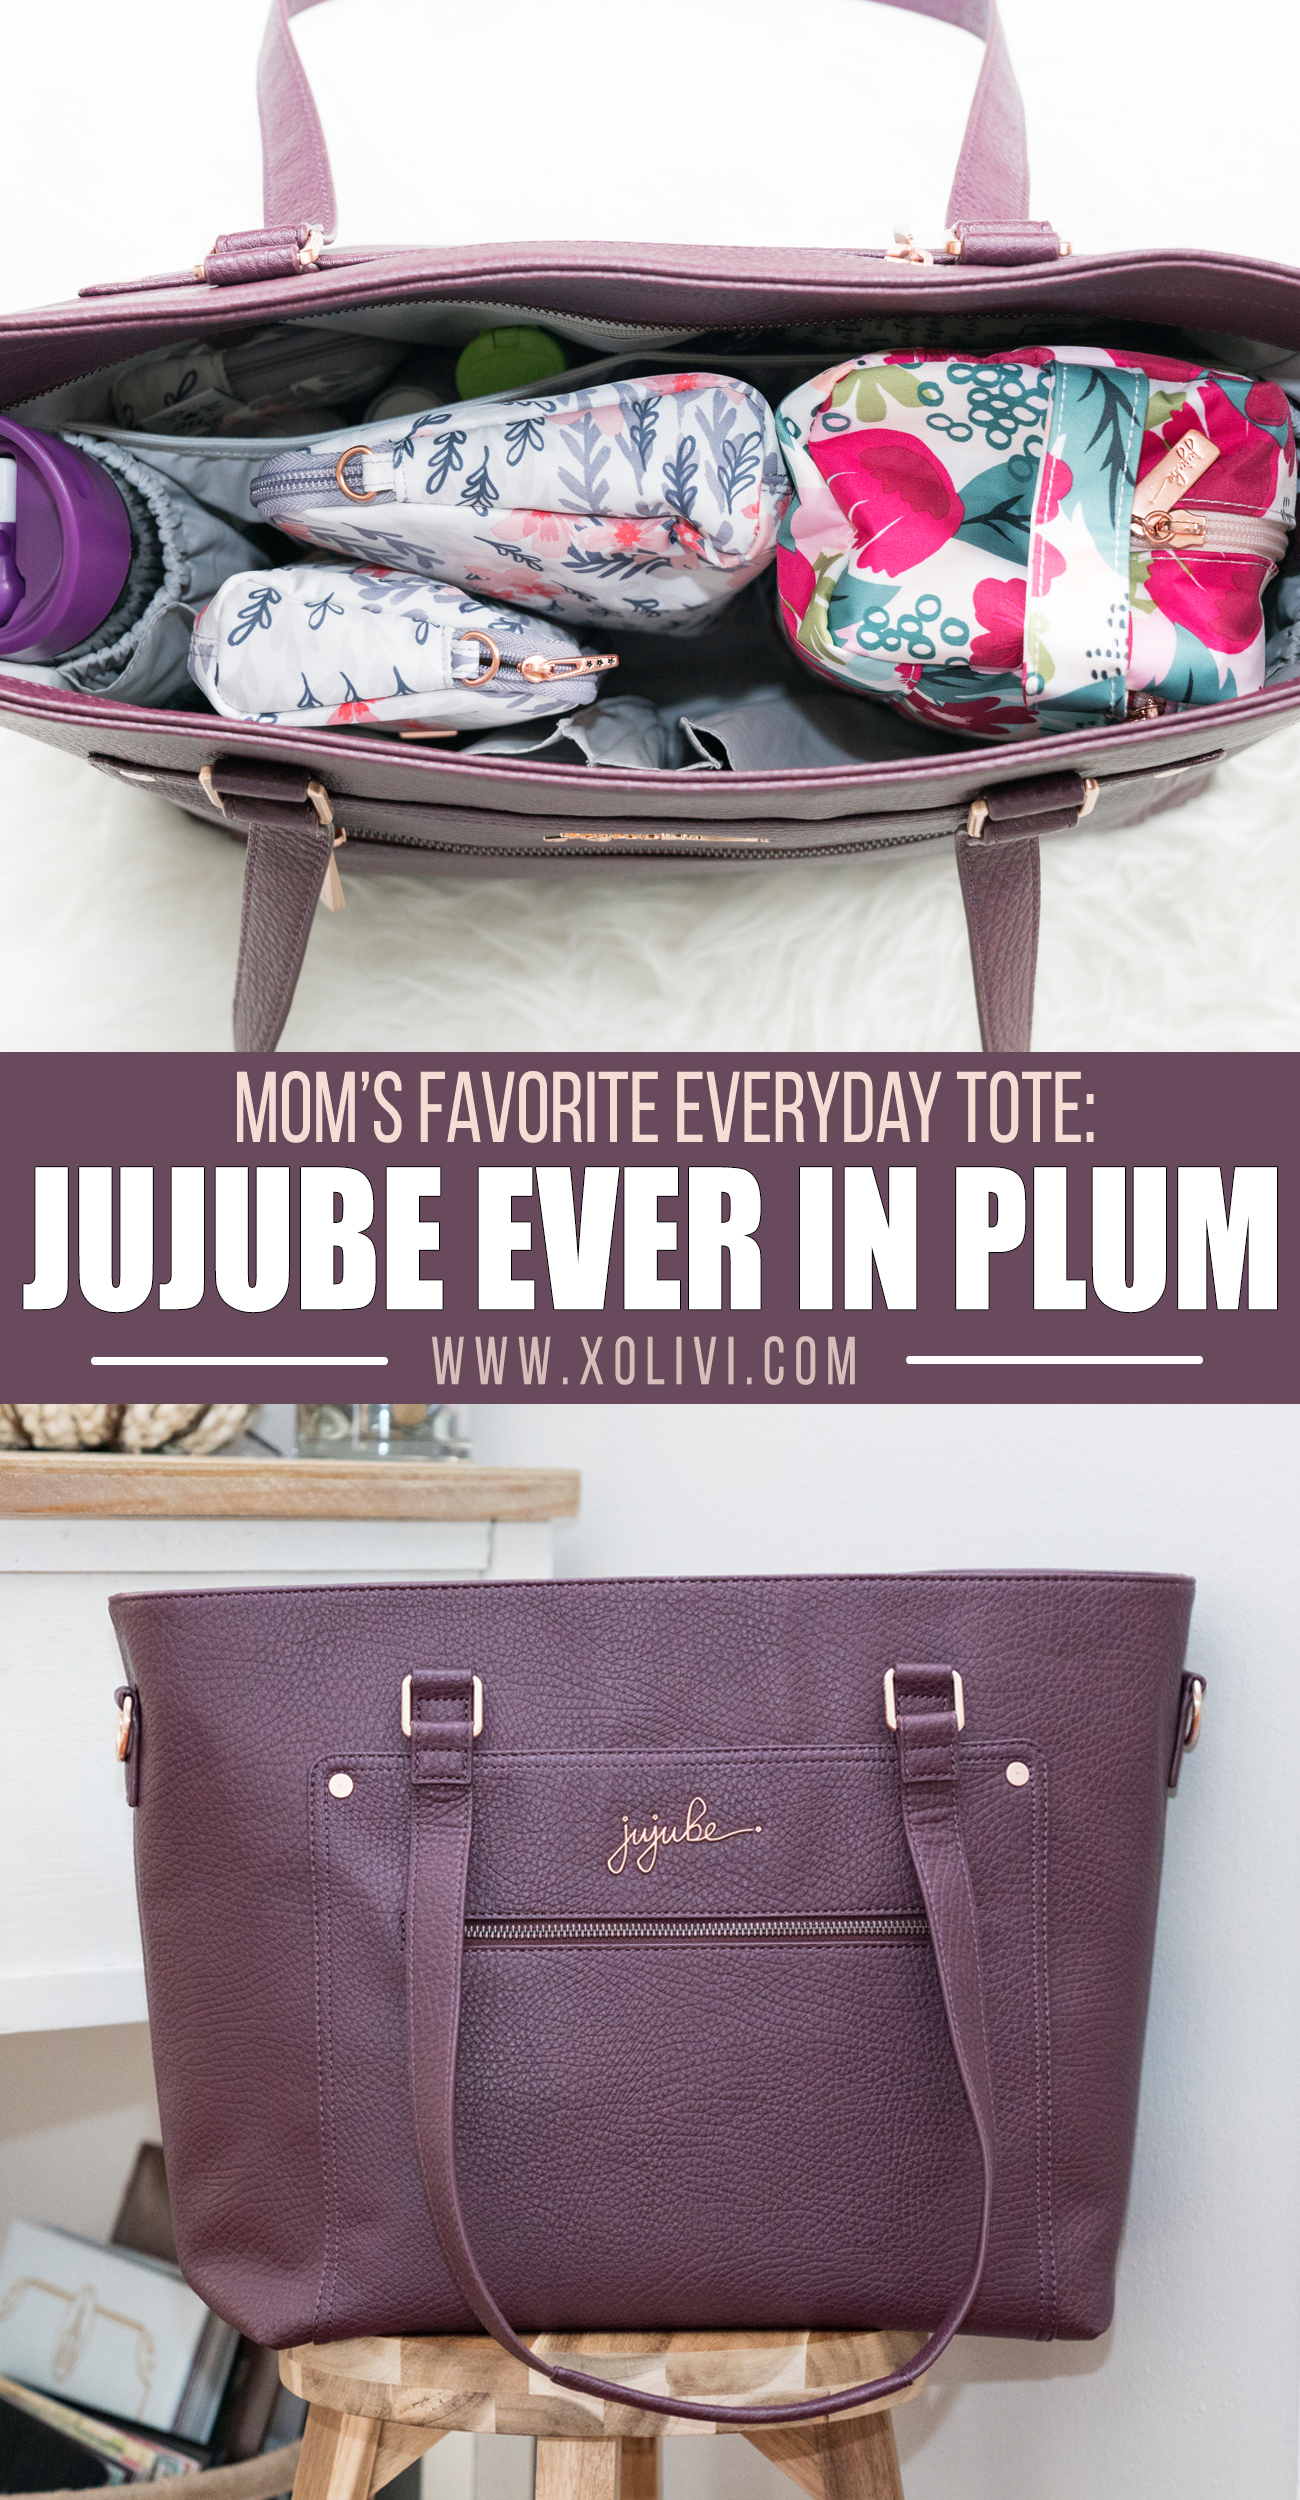 JUJUBE ever in plum packing tips